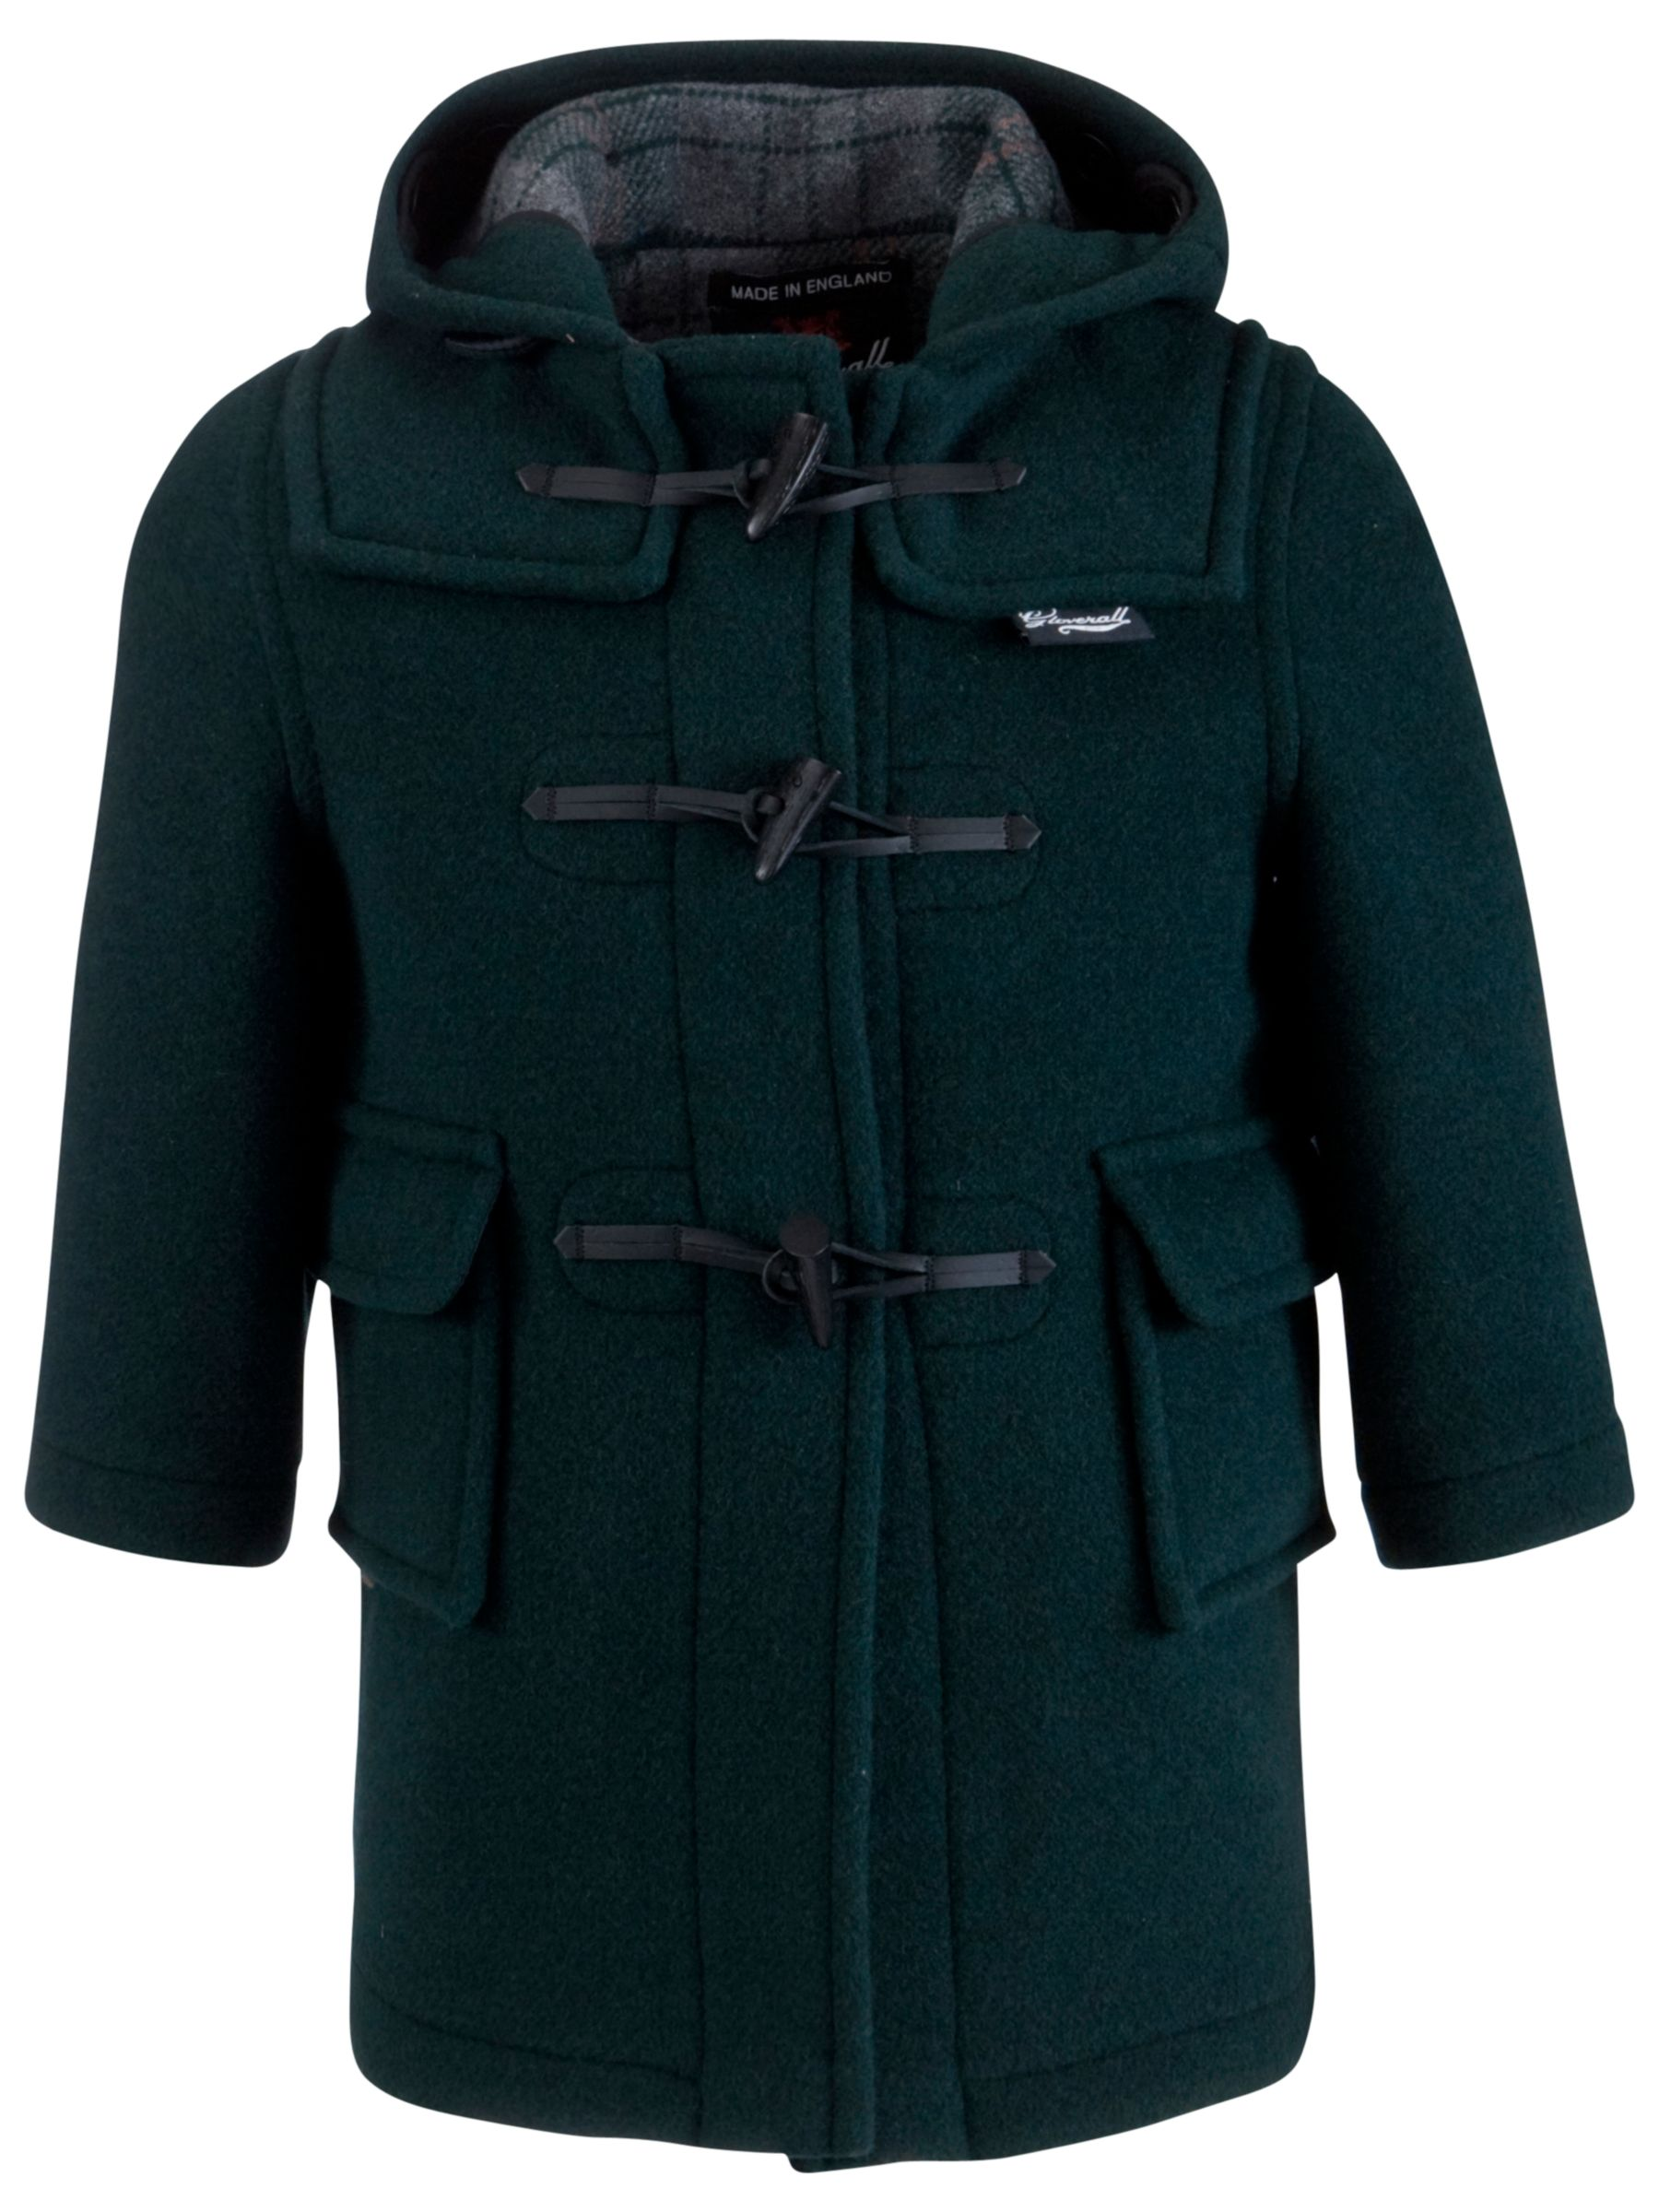 Gloverall Gloverall School Duffle Coat, Green